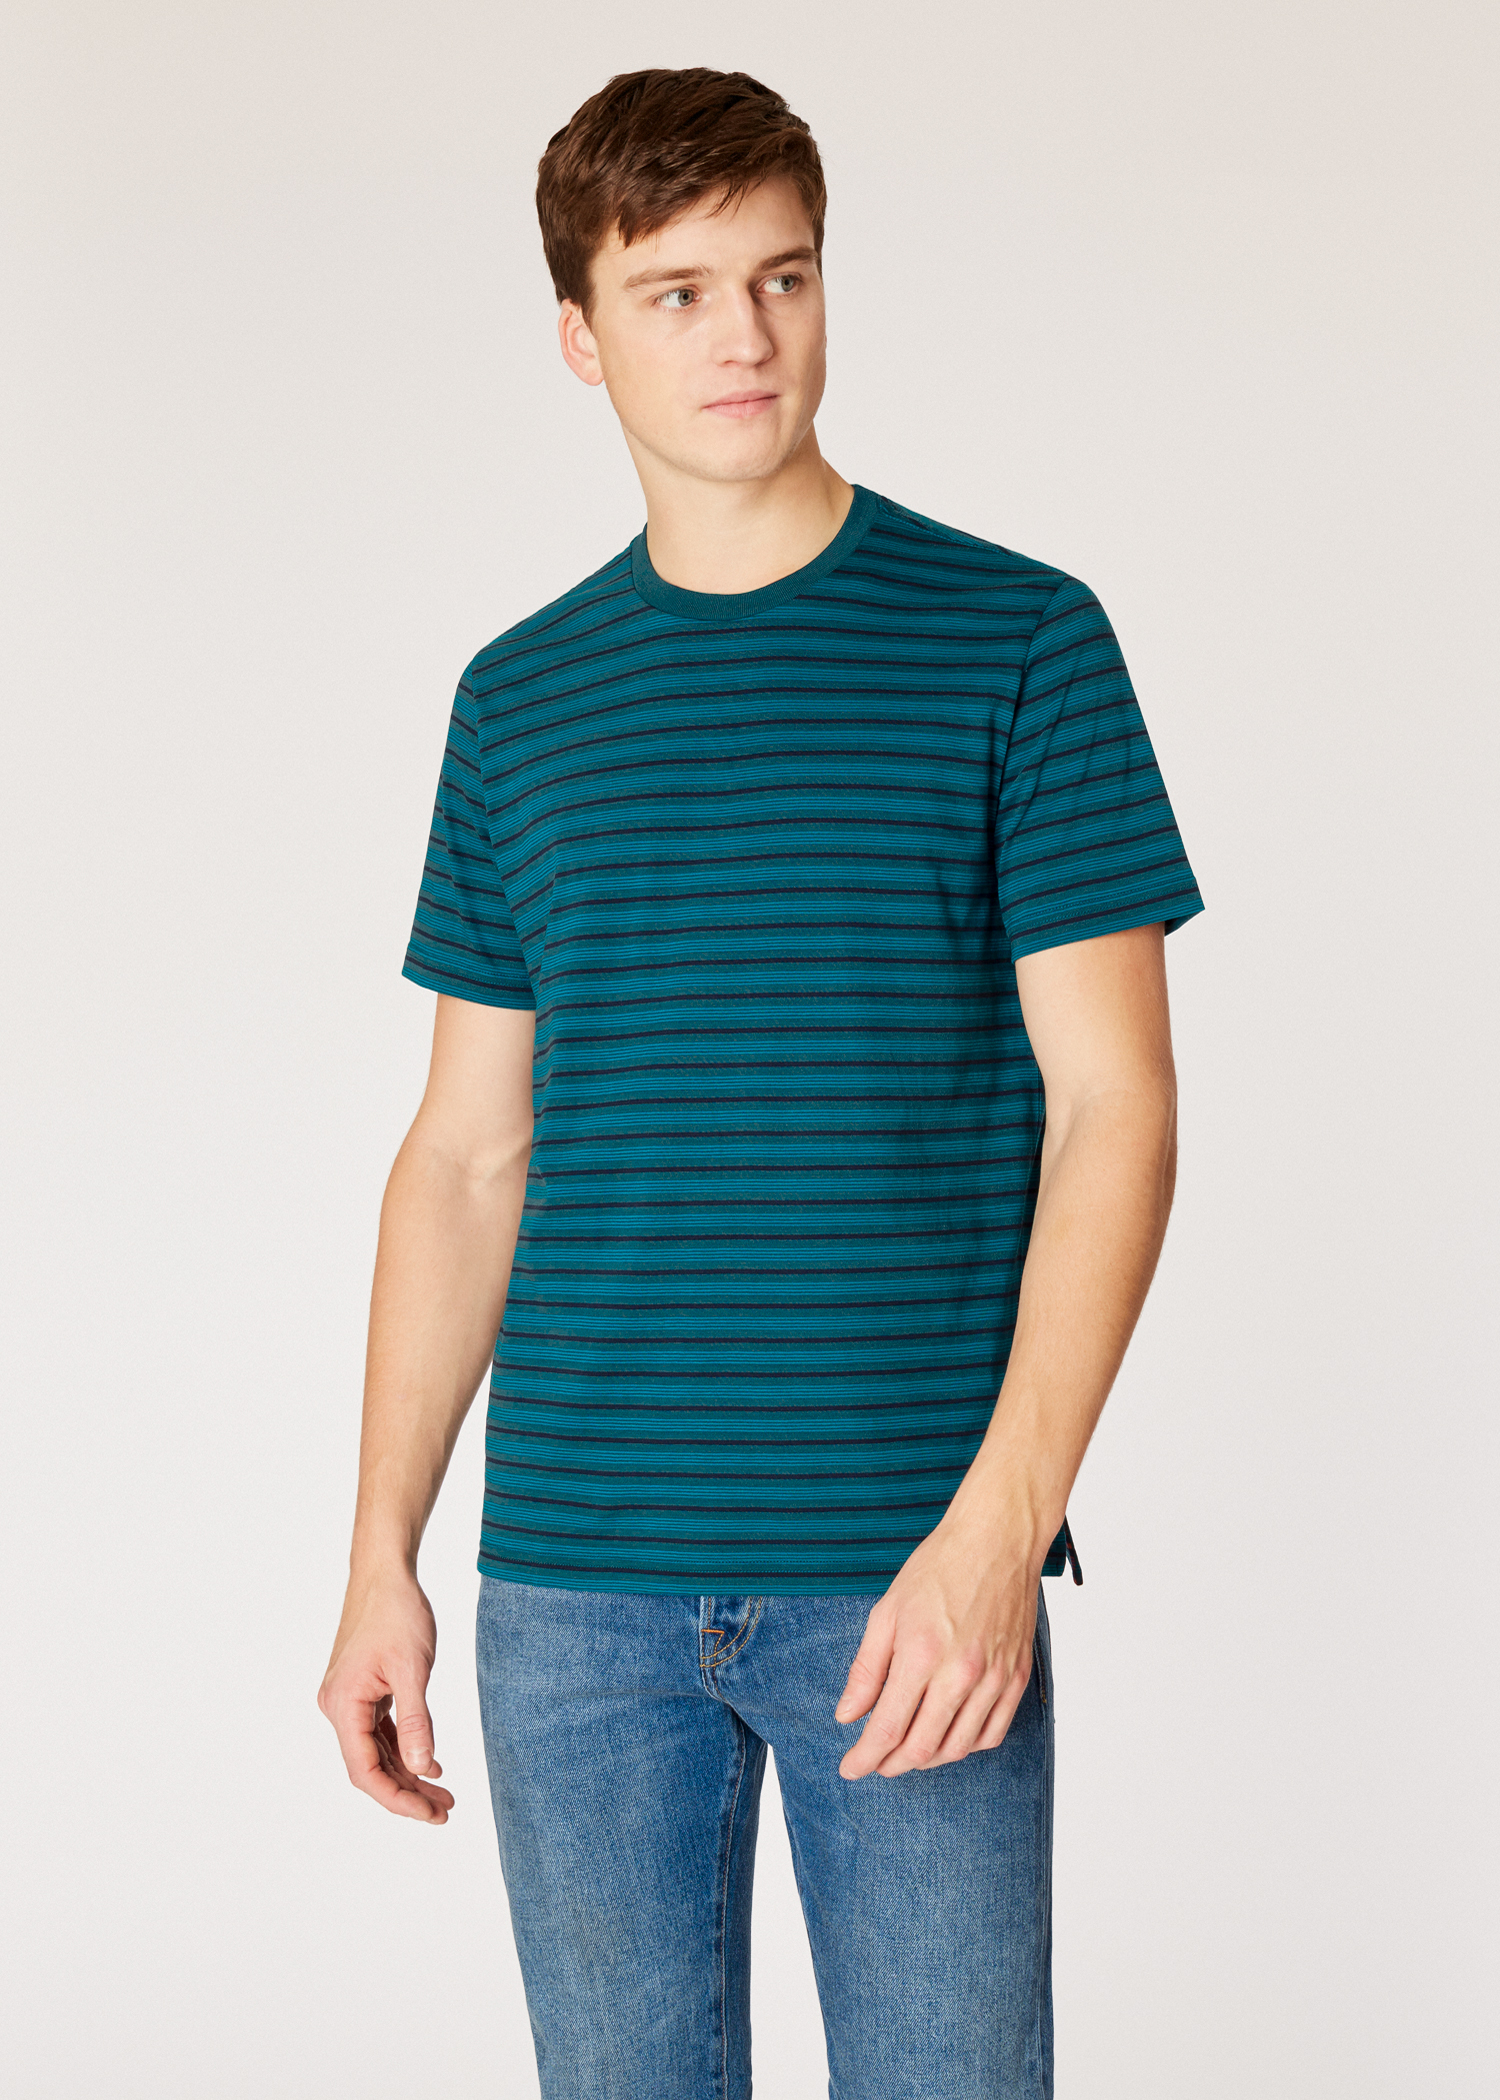 6a88b0e979 Model front close up - Men's Teal And Navy Stripe Organic-Cotton T-Shirt